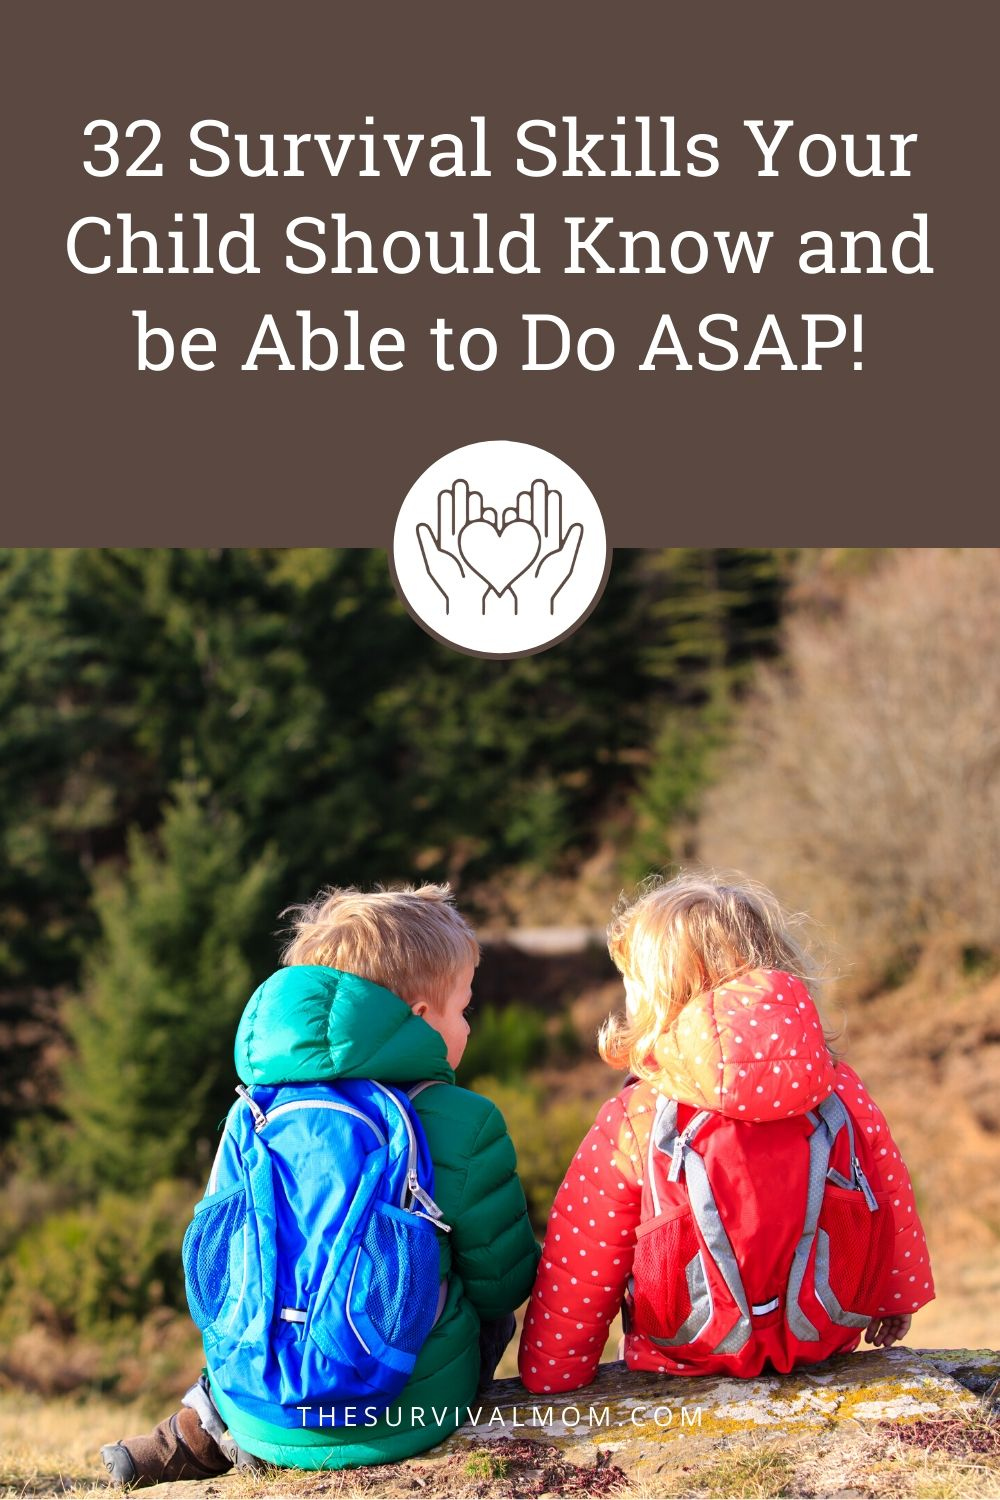 32 Survival Skills Your Child Should Know and be Able to Do ASAP via The Survival Mom